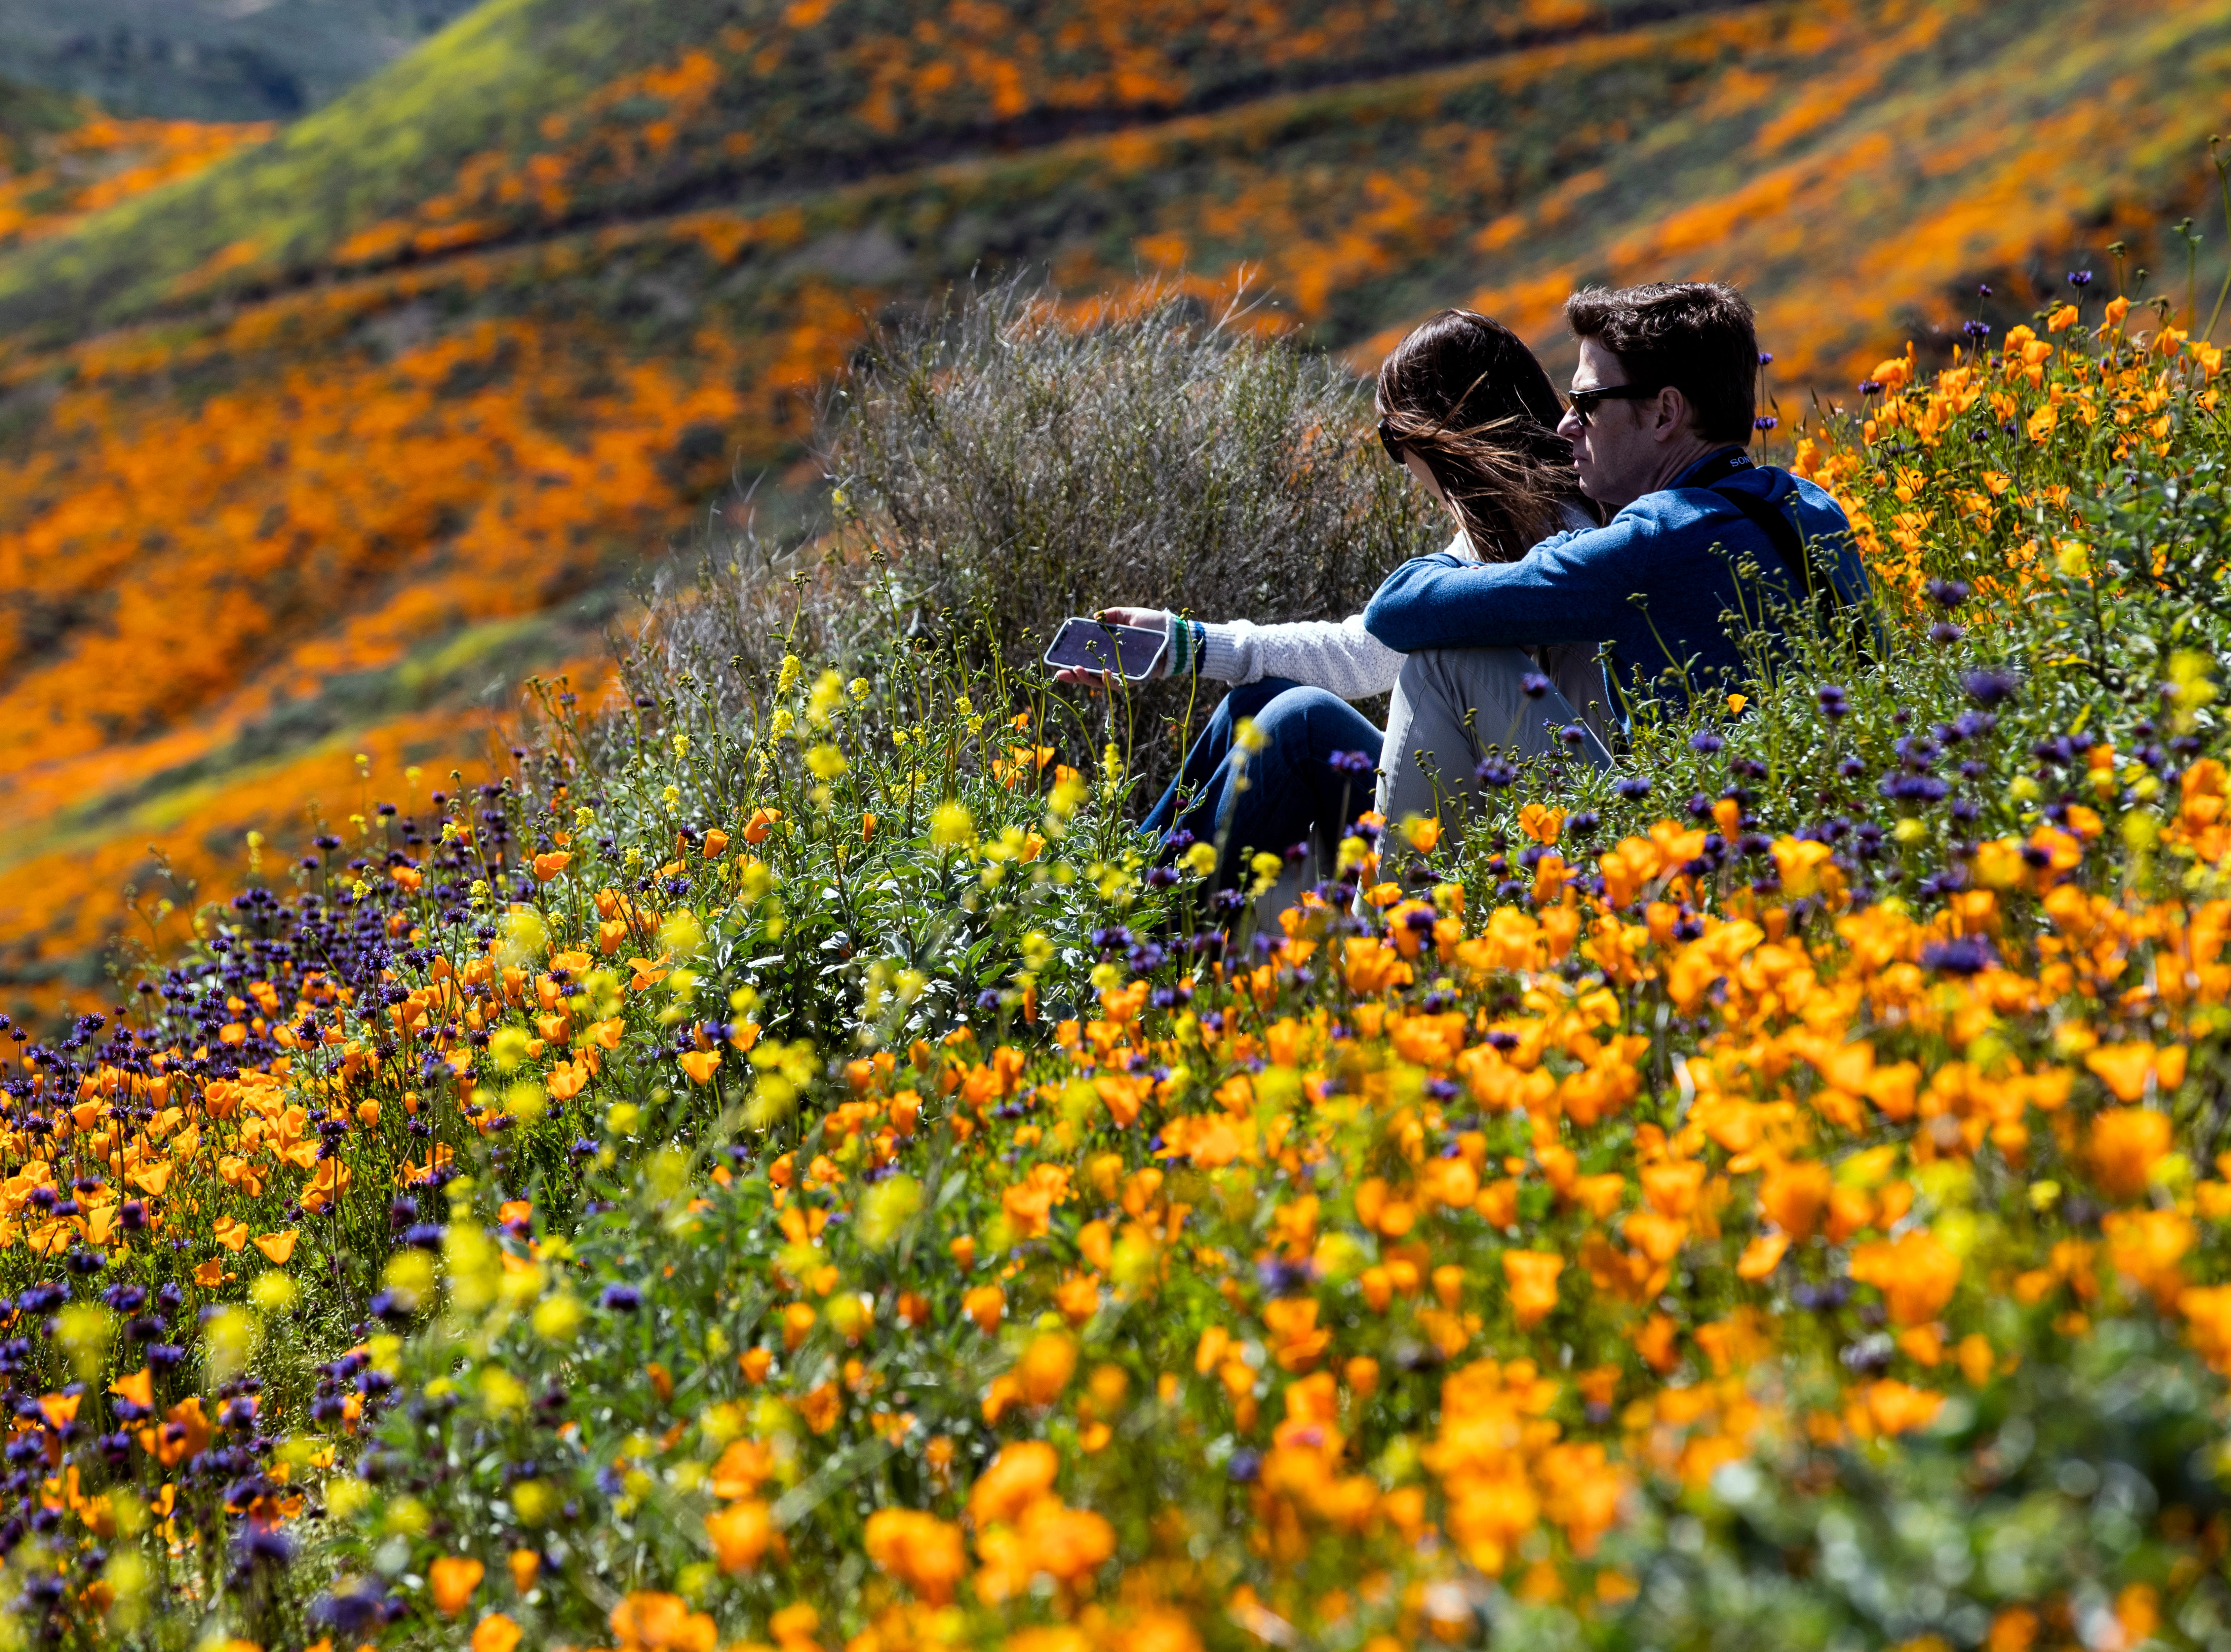 epa07424024 A couple sits on a slop in the middle of a poppy fields the slops of Walker Canyon near Lake Elsinore, California, USA, 08 March 2019. The heavy rains in California have boosted the growth of wild desert flowers, an occurrence called super bloom.  EPA-EFE/ETIENNE LAURENT ORG XMIT: ELAU4359